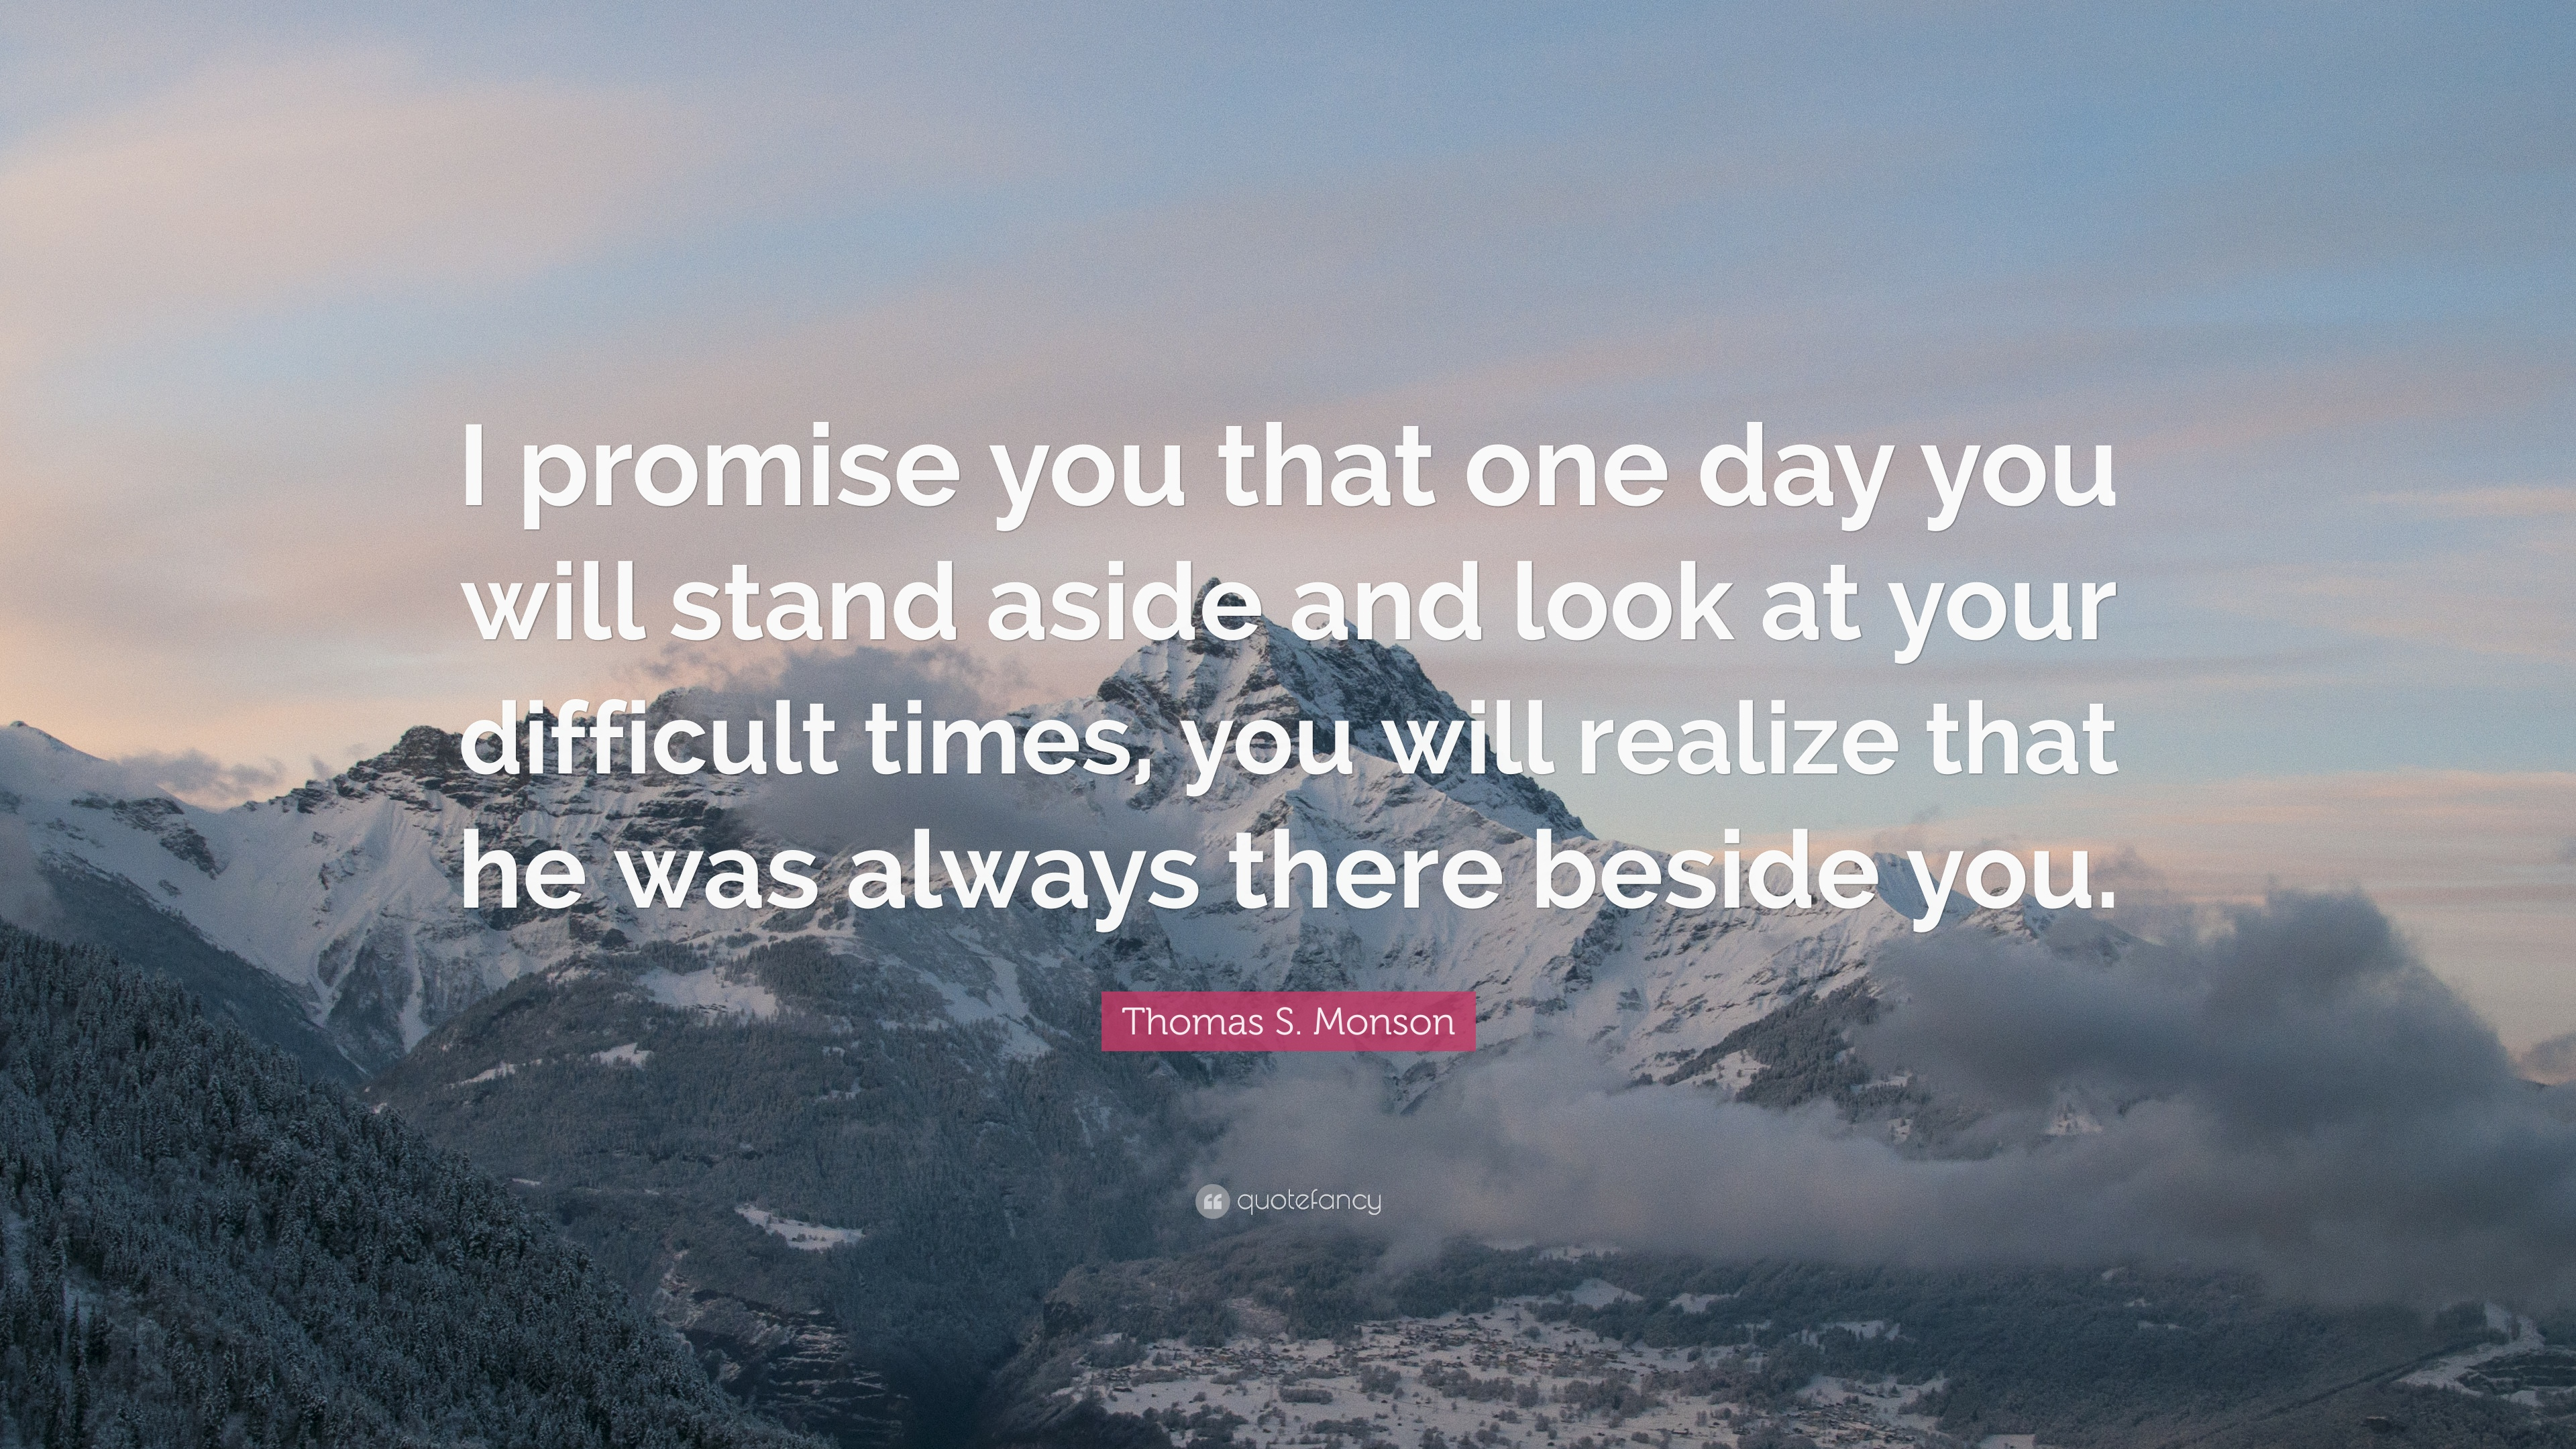 Thomas S Monson Quote I Promise You That One Day You Will Stand